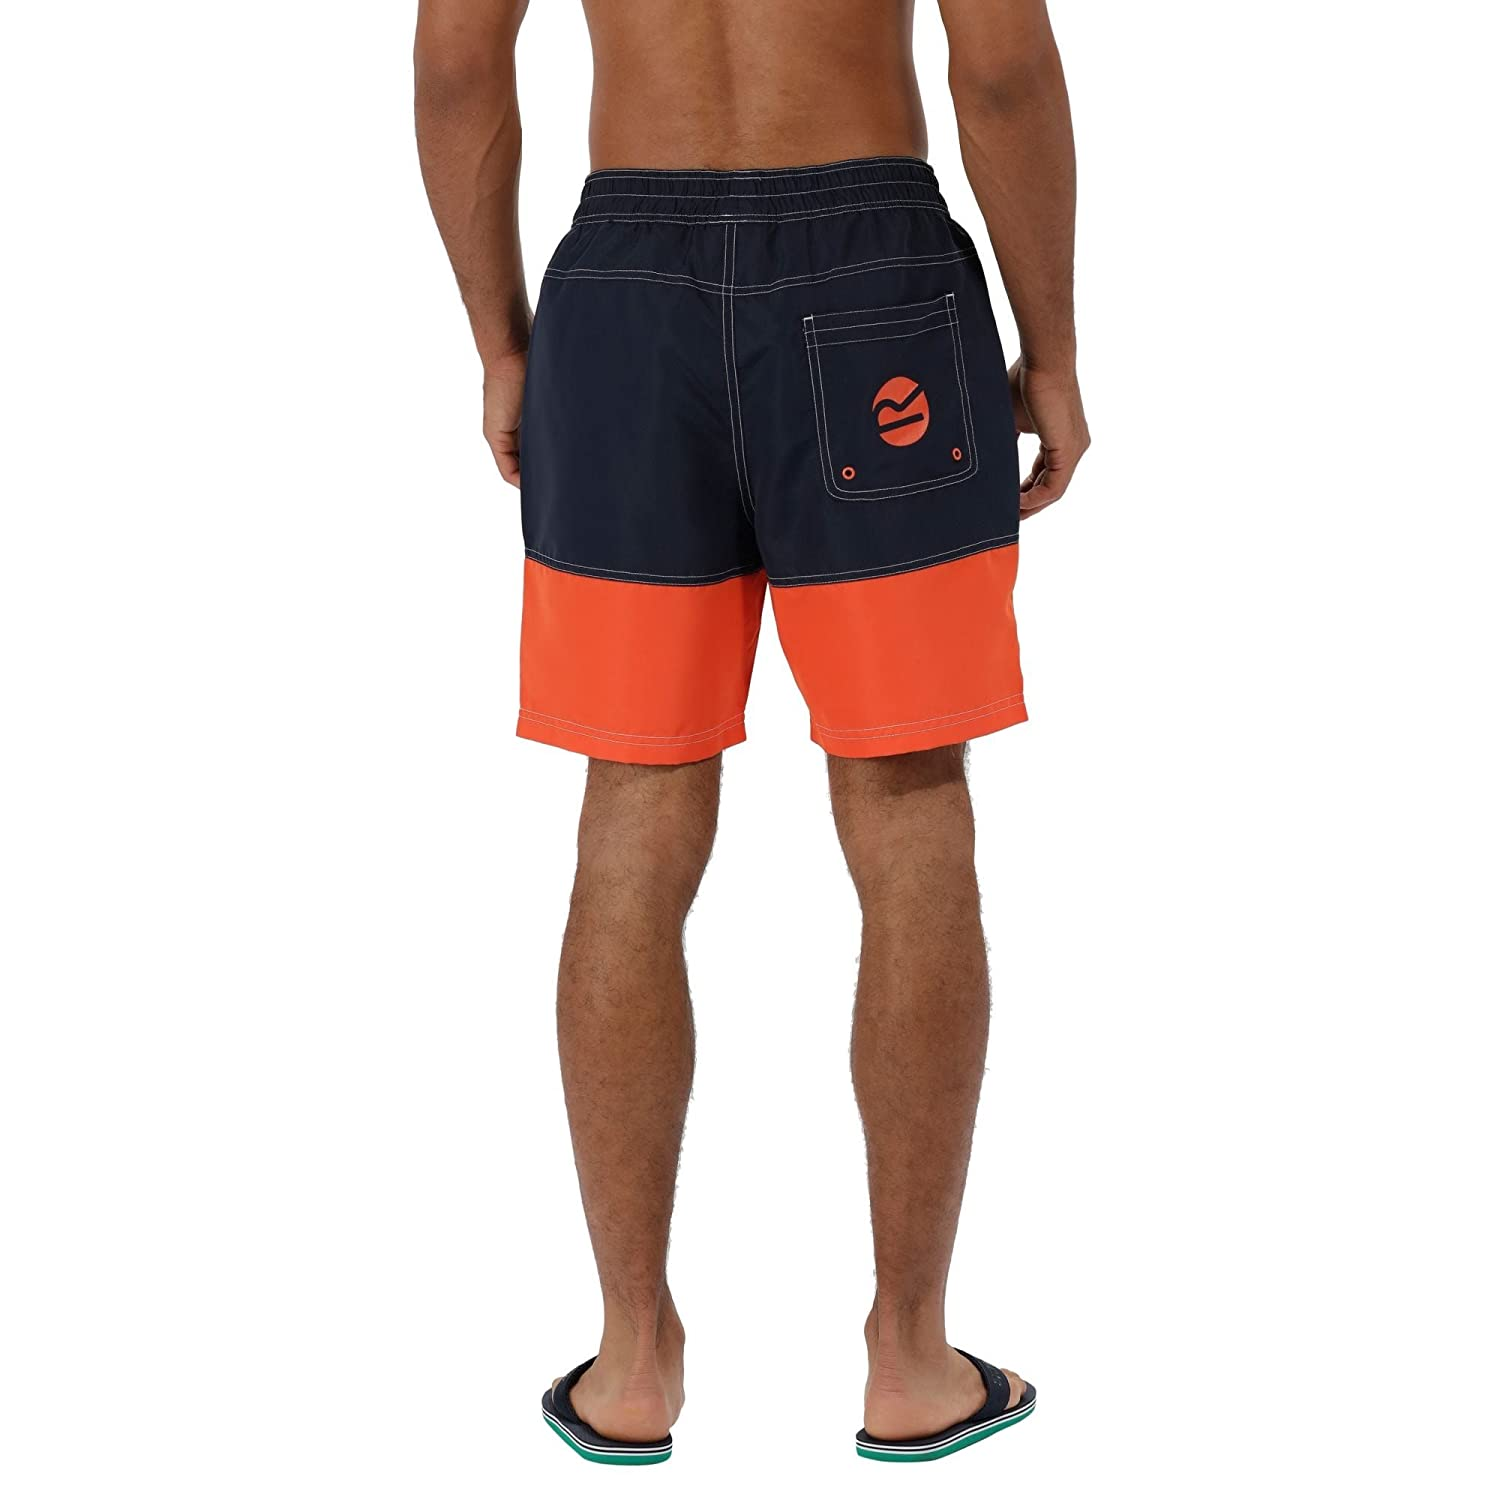 b88ce947ce Regatta Men's Brachtmar Ii Swimwear: Amazon.co.uk: Sports & Outdoors